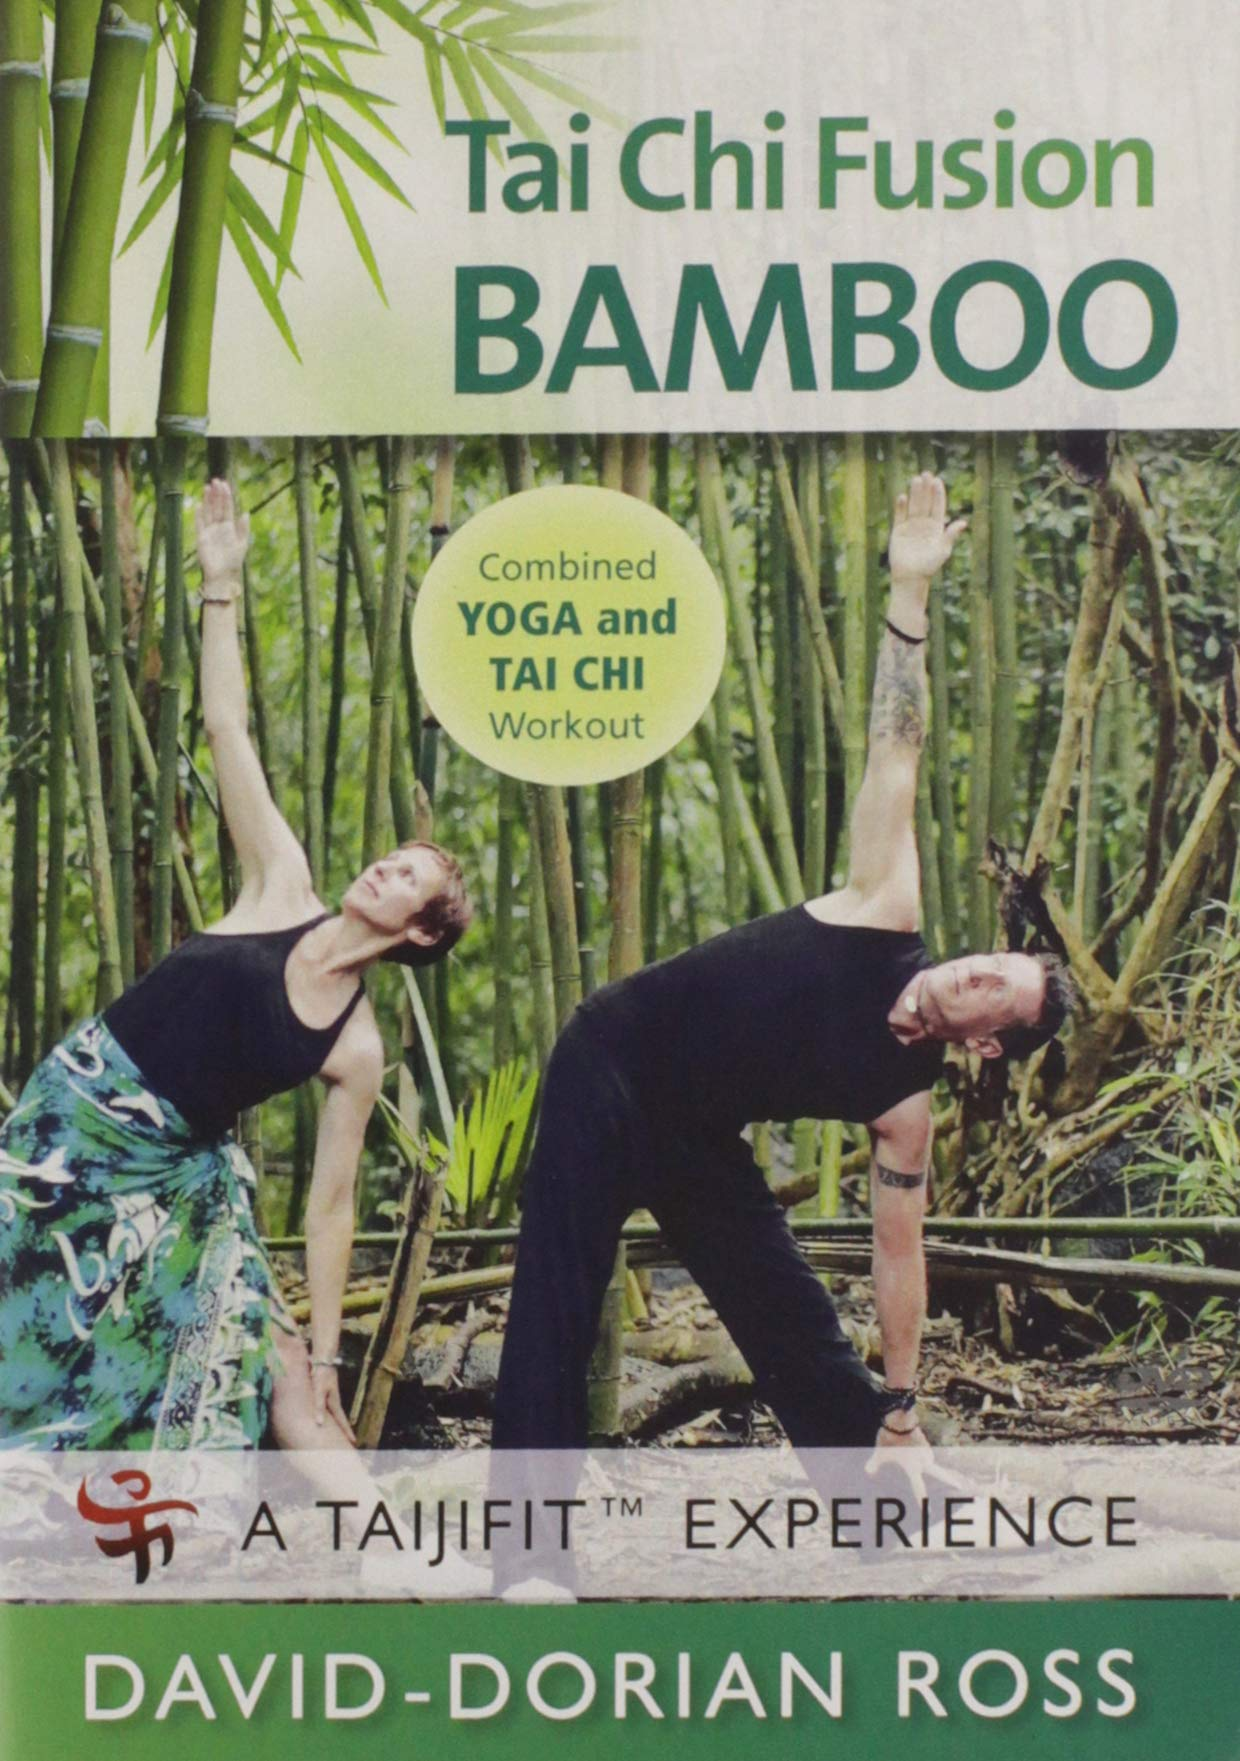 Tai Chi Fusion Bamboo Yoga With David Dorian Ross Combined Yoga